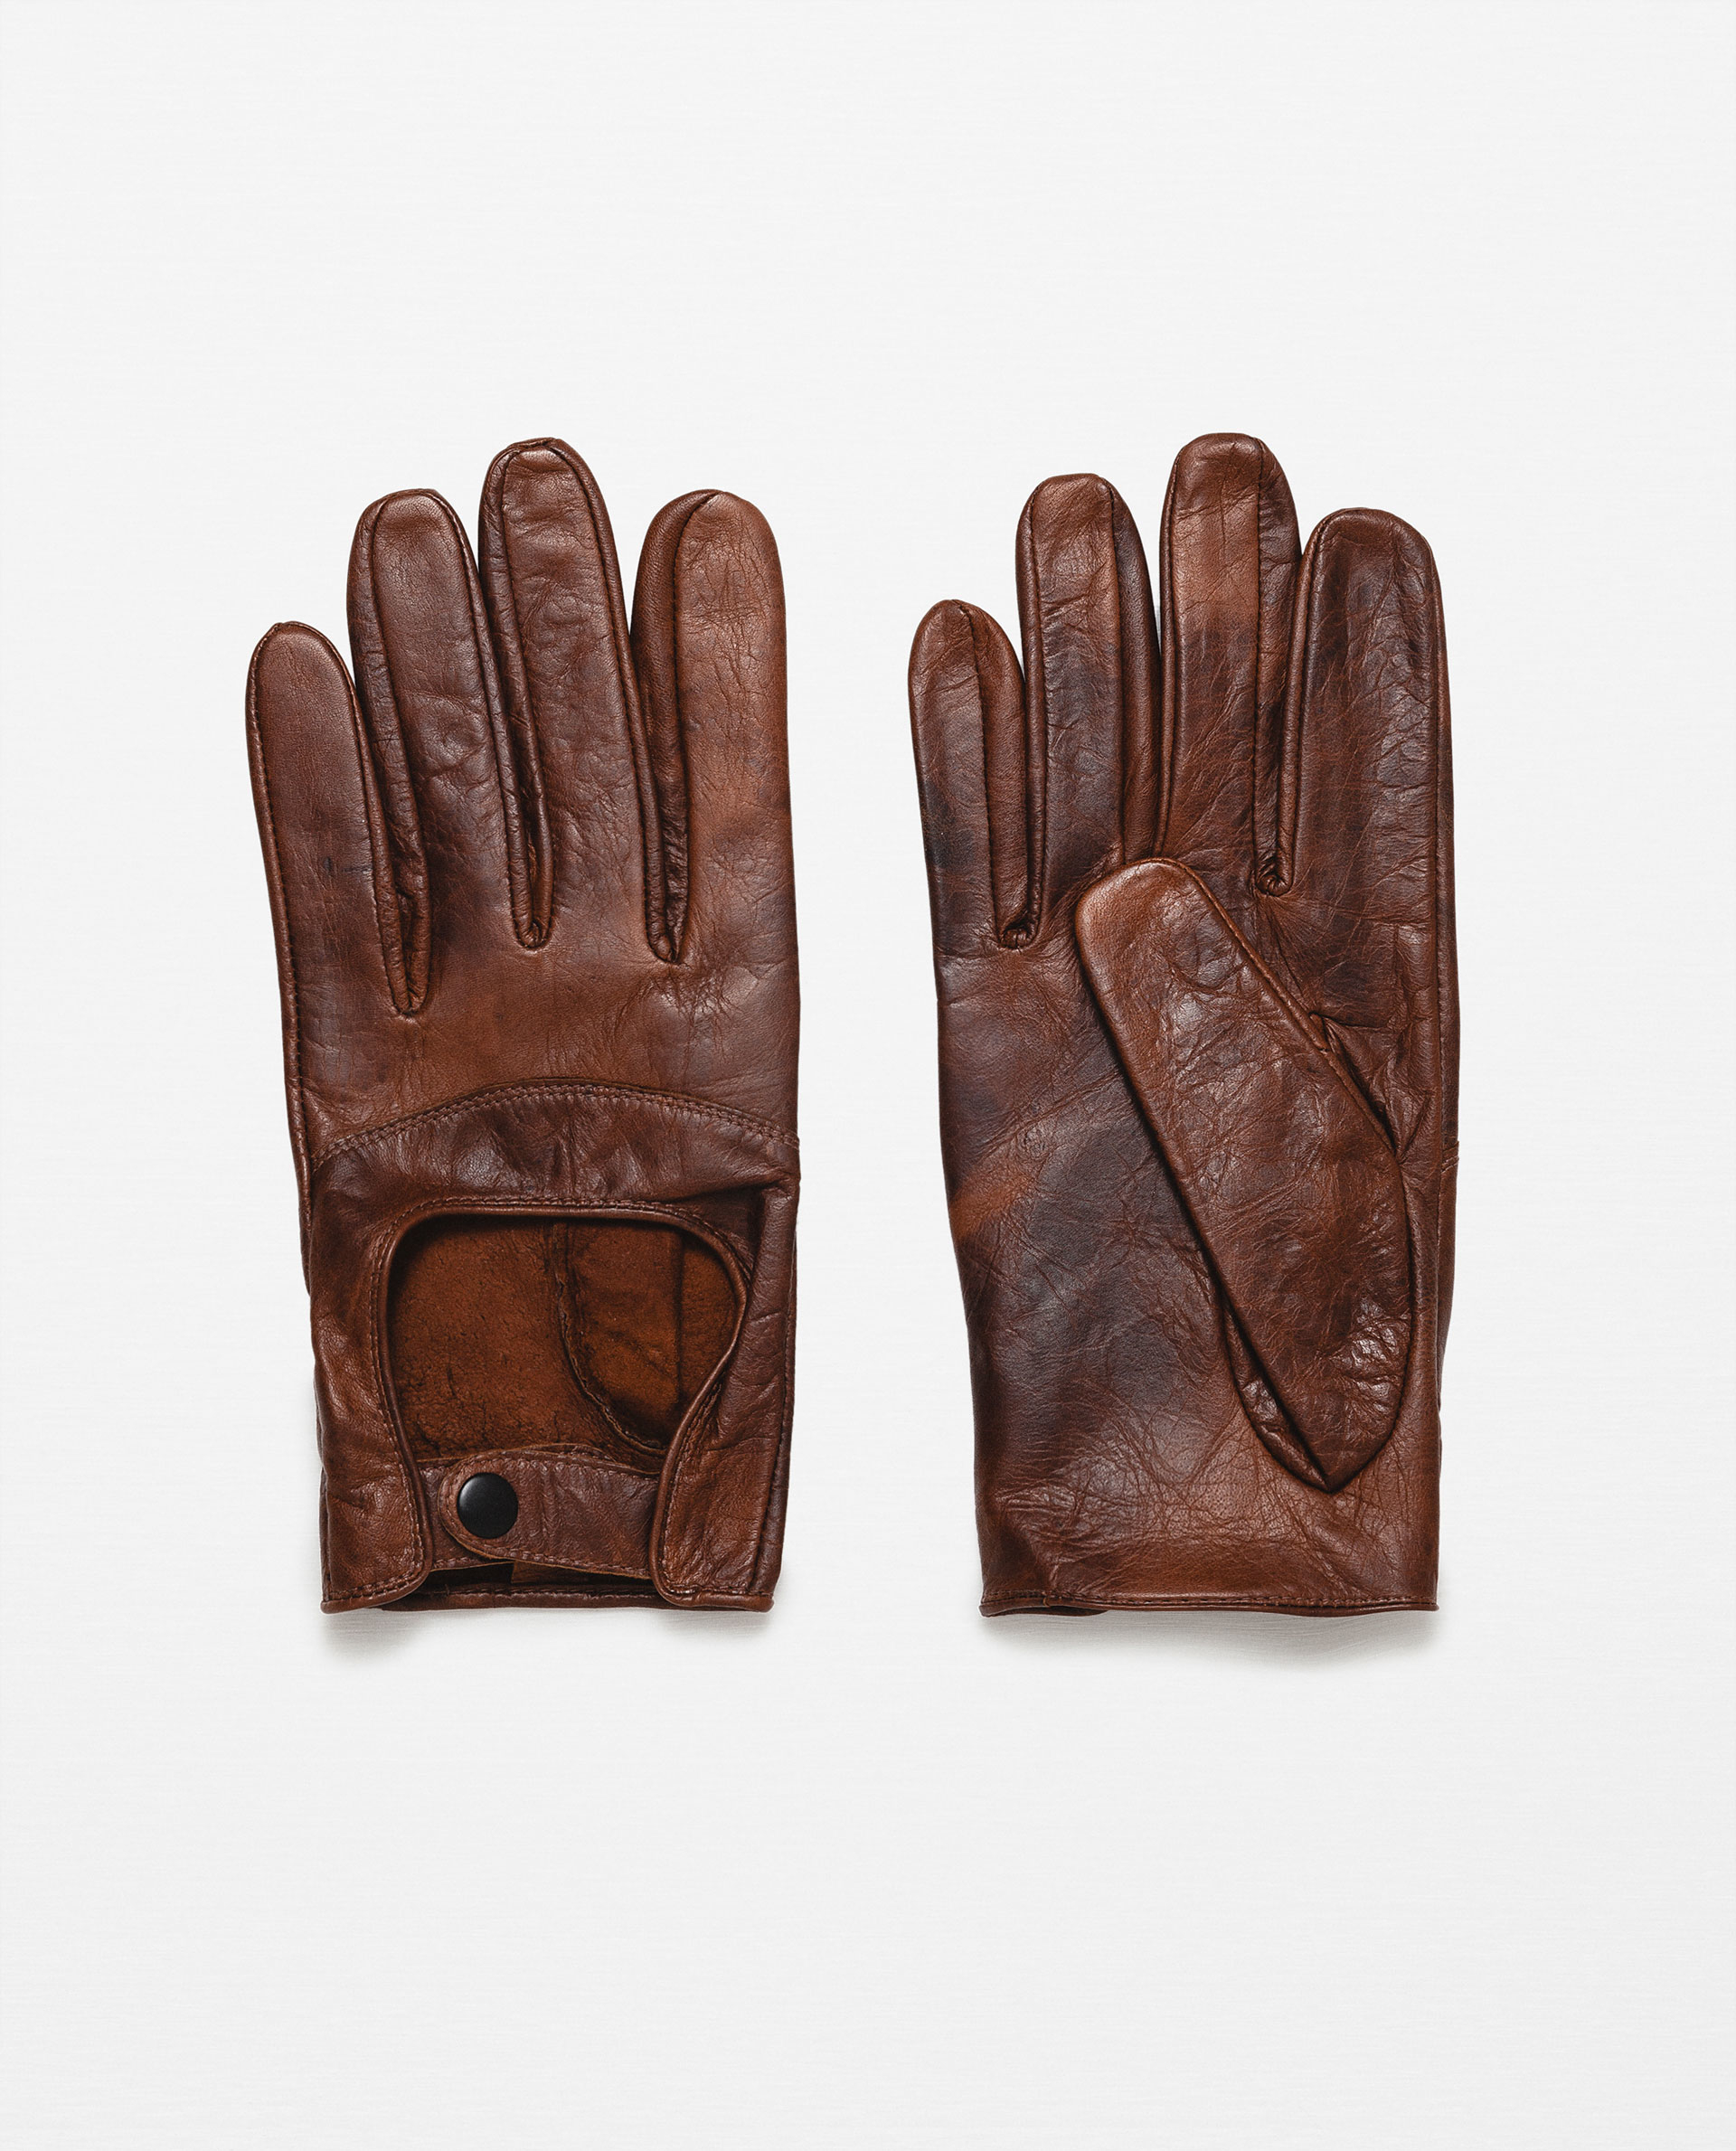 Mens gloves for driving - Gallery Men S Leather Gloves Men S Driving Gloves